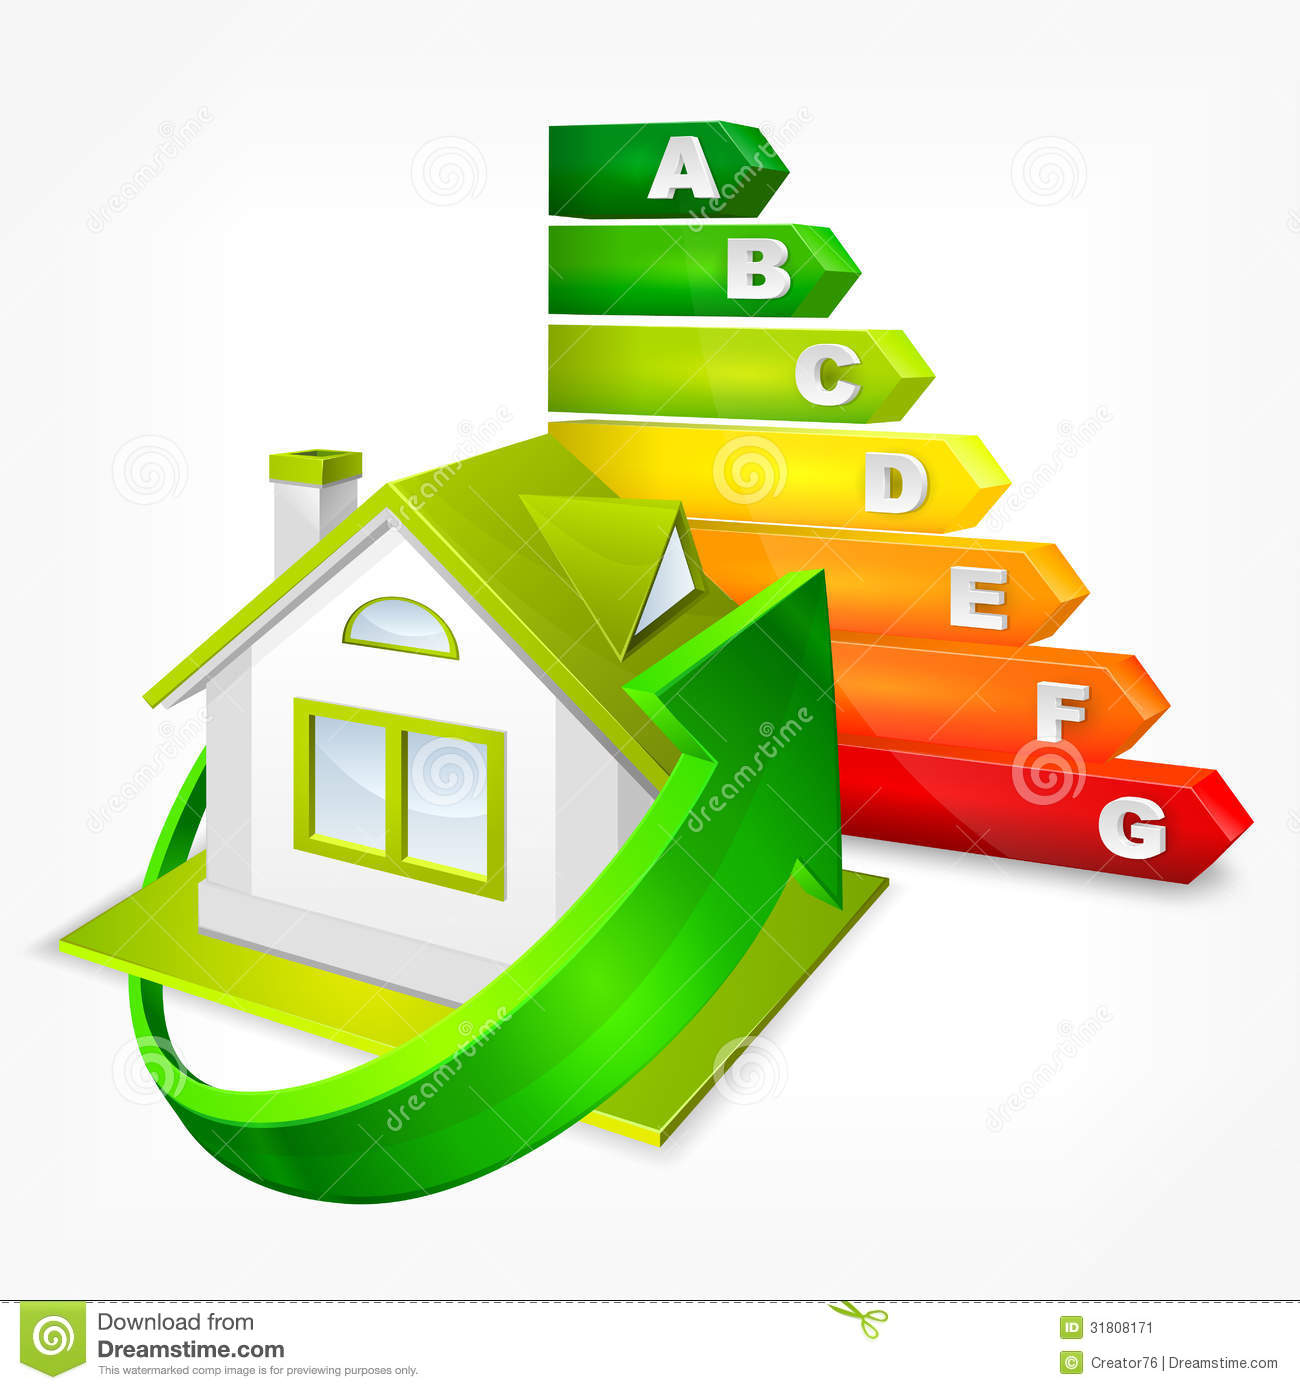 energy and efficiency A misunderstanding of the difference between sustainability versus energy efficiency may not just be slowing the move to sustainability, but could actually be working against the world's green goals.